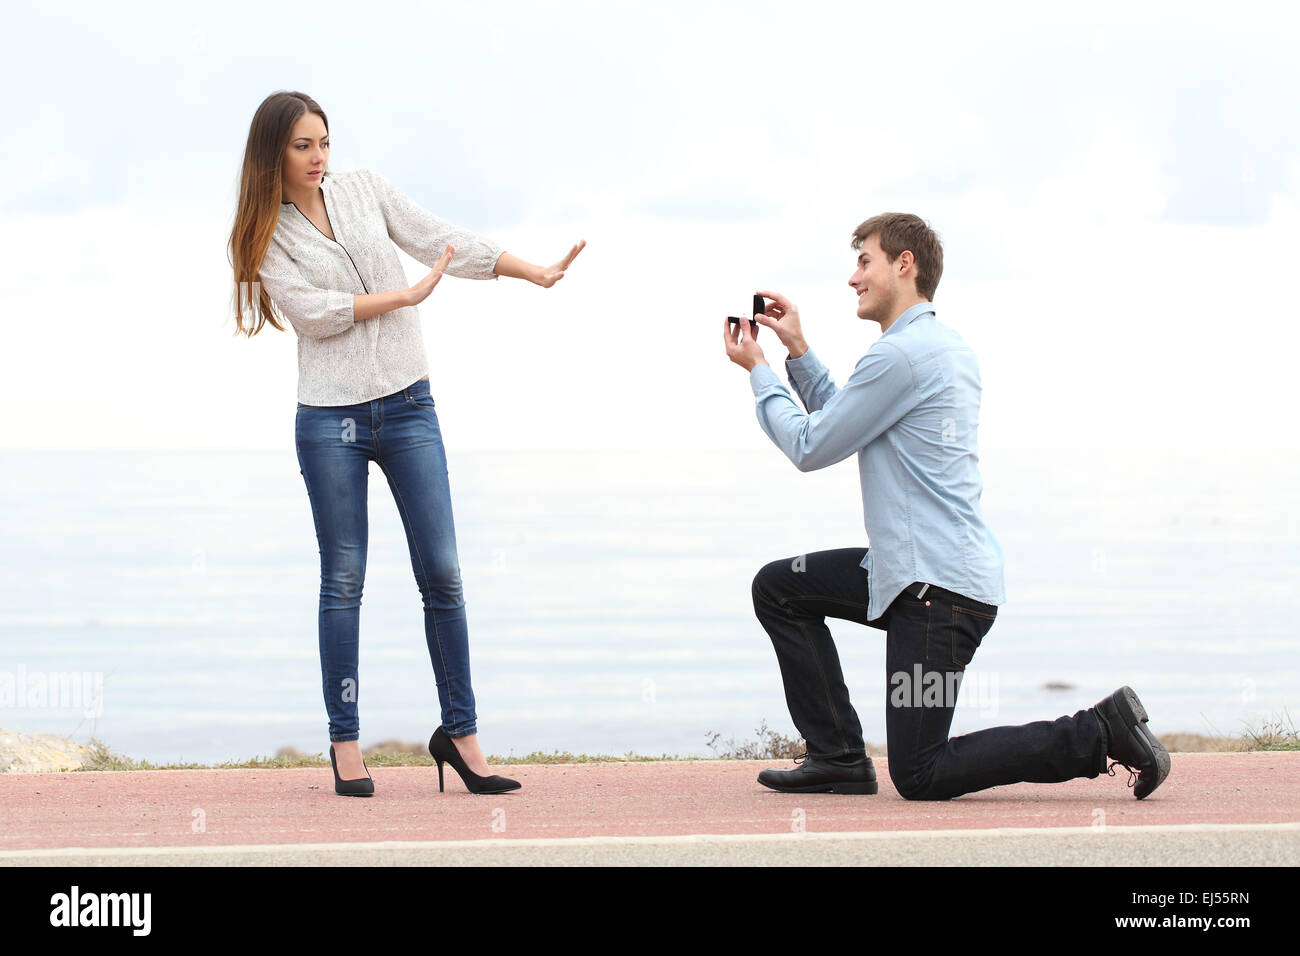 Proposal rejection when a happy man asks in marriage to a woman on the beach - Stock Image